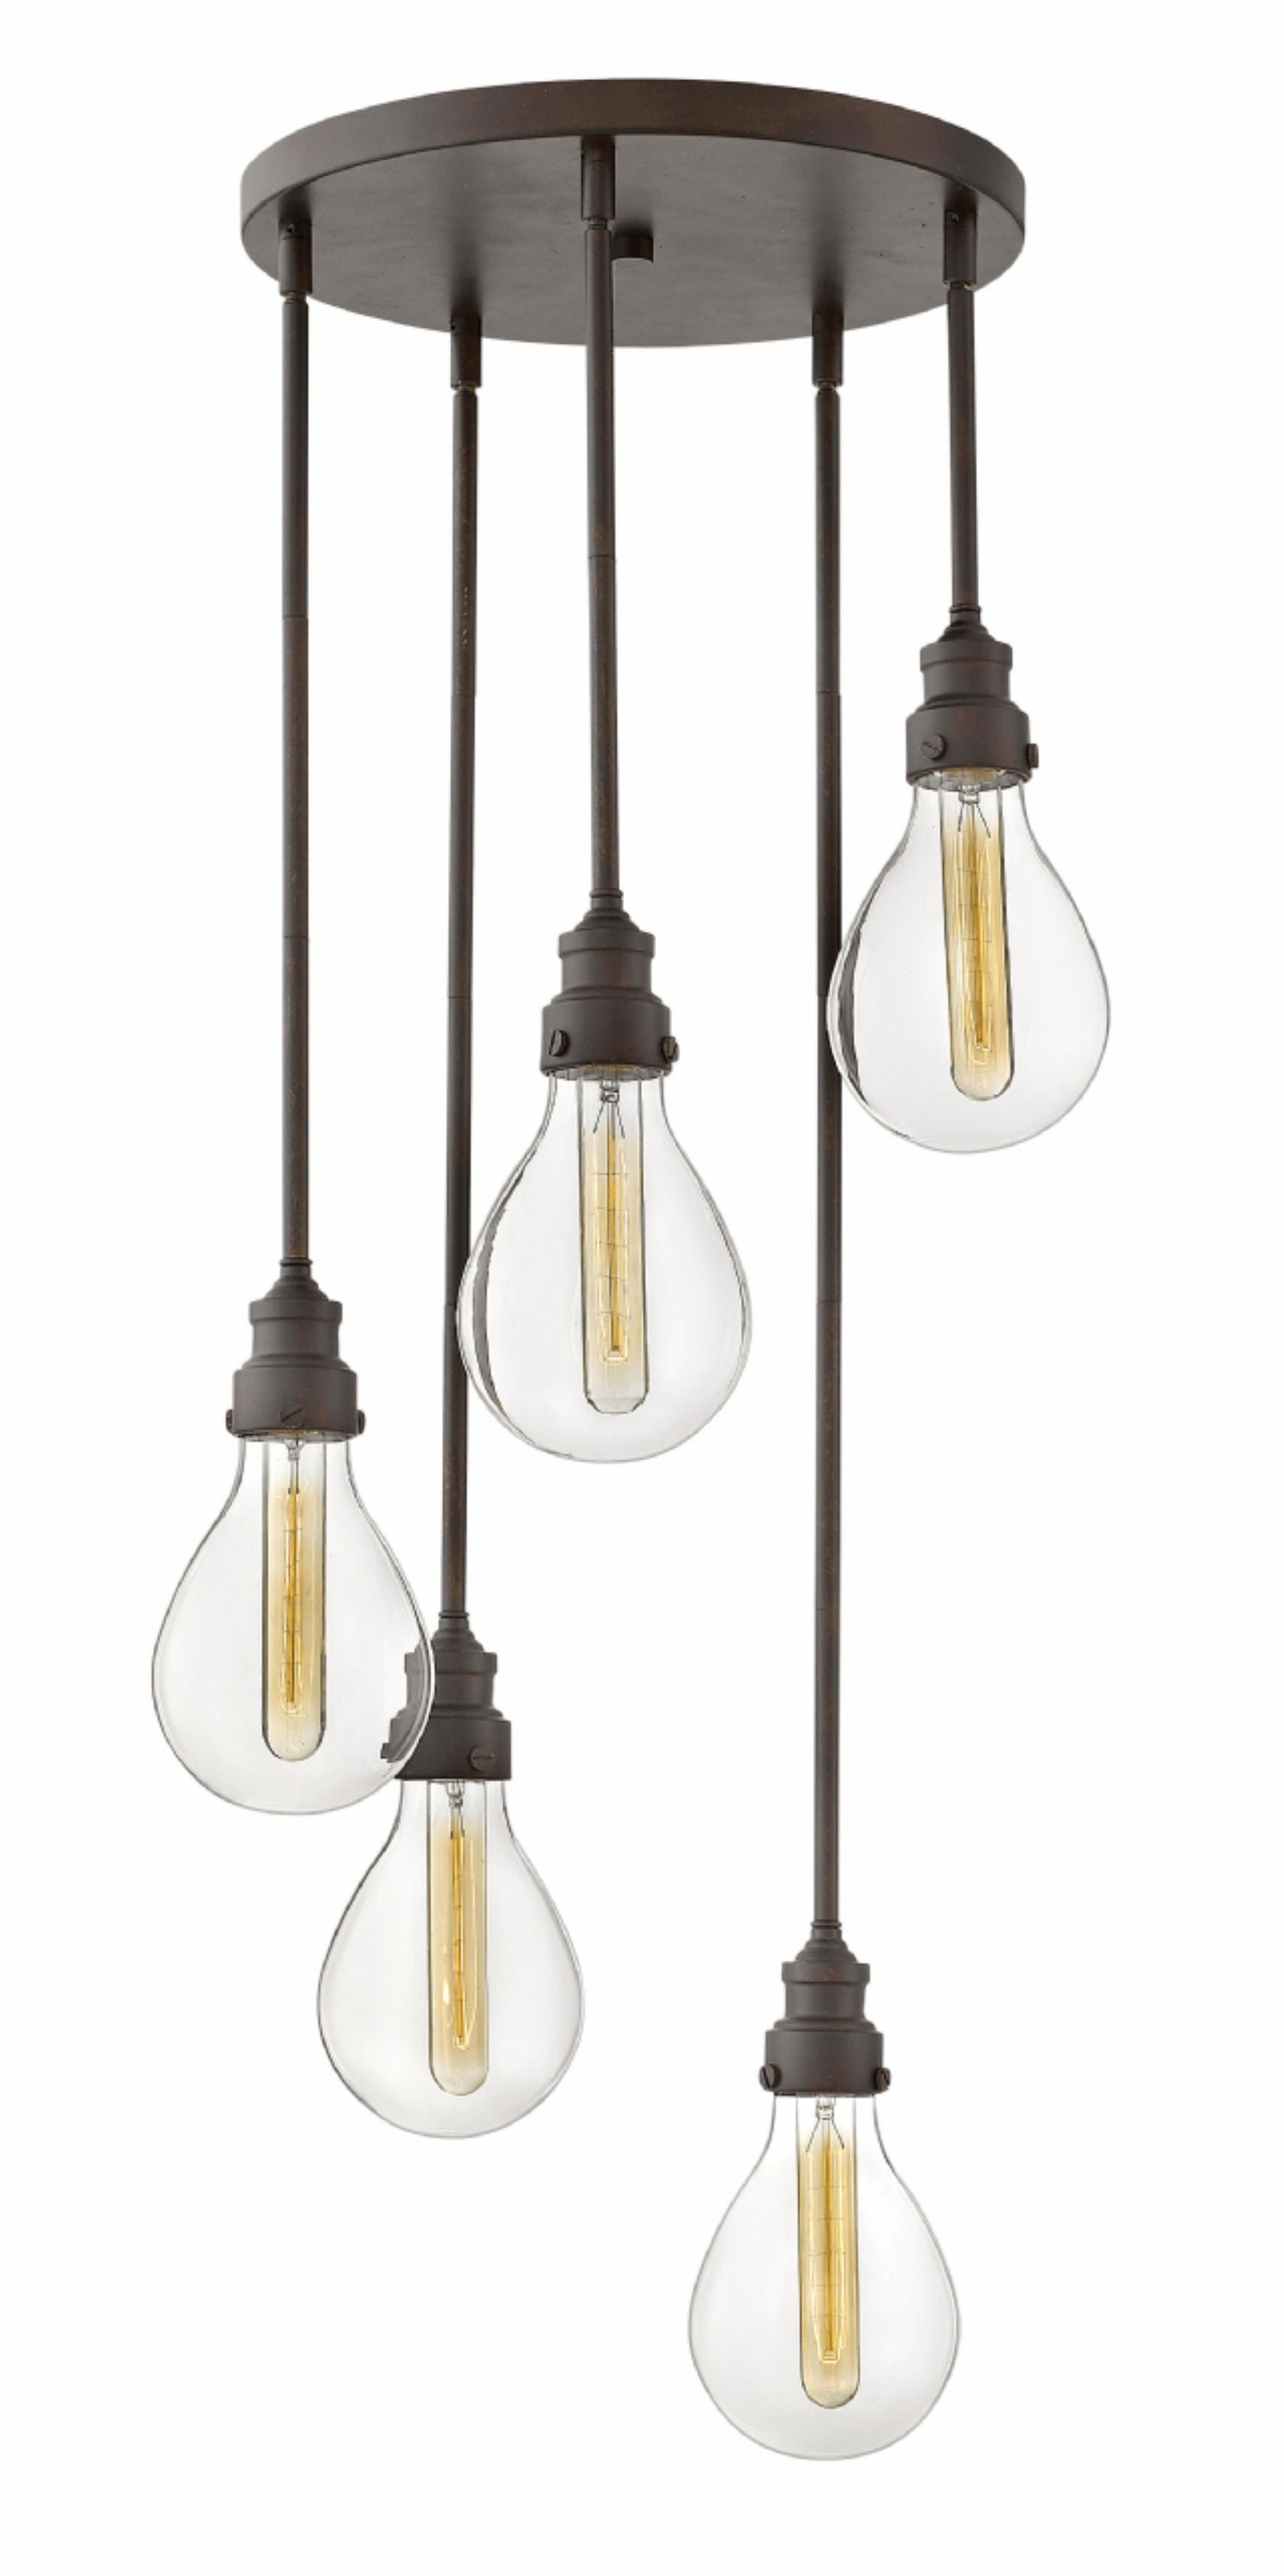 Denton Multi-Light Pendant in Industrial Iron by Hinkley Lighting, 3265IN